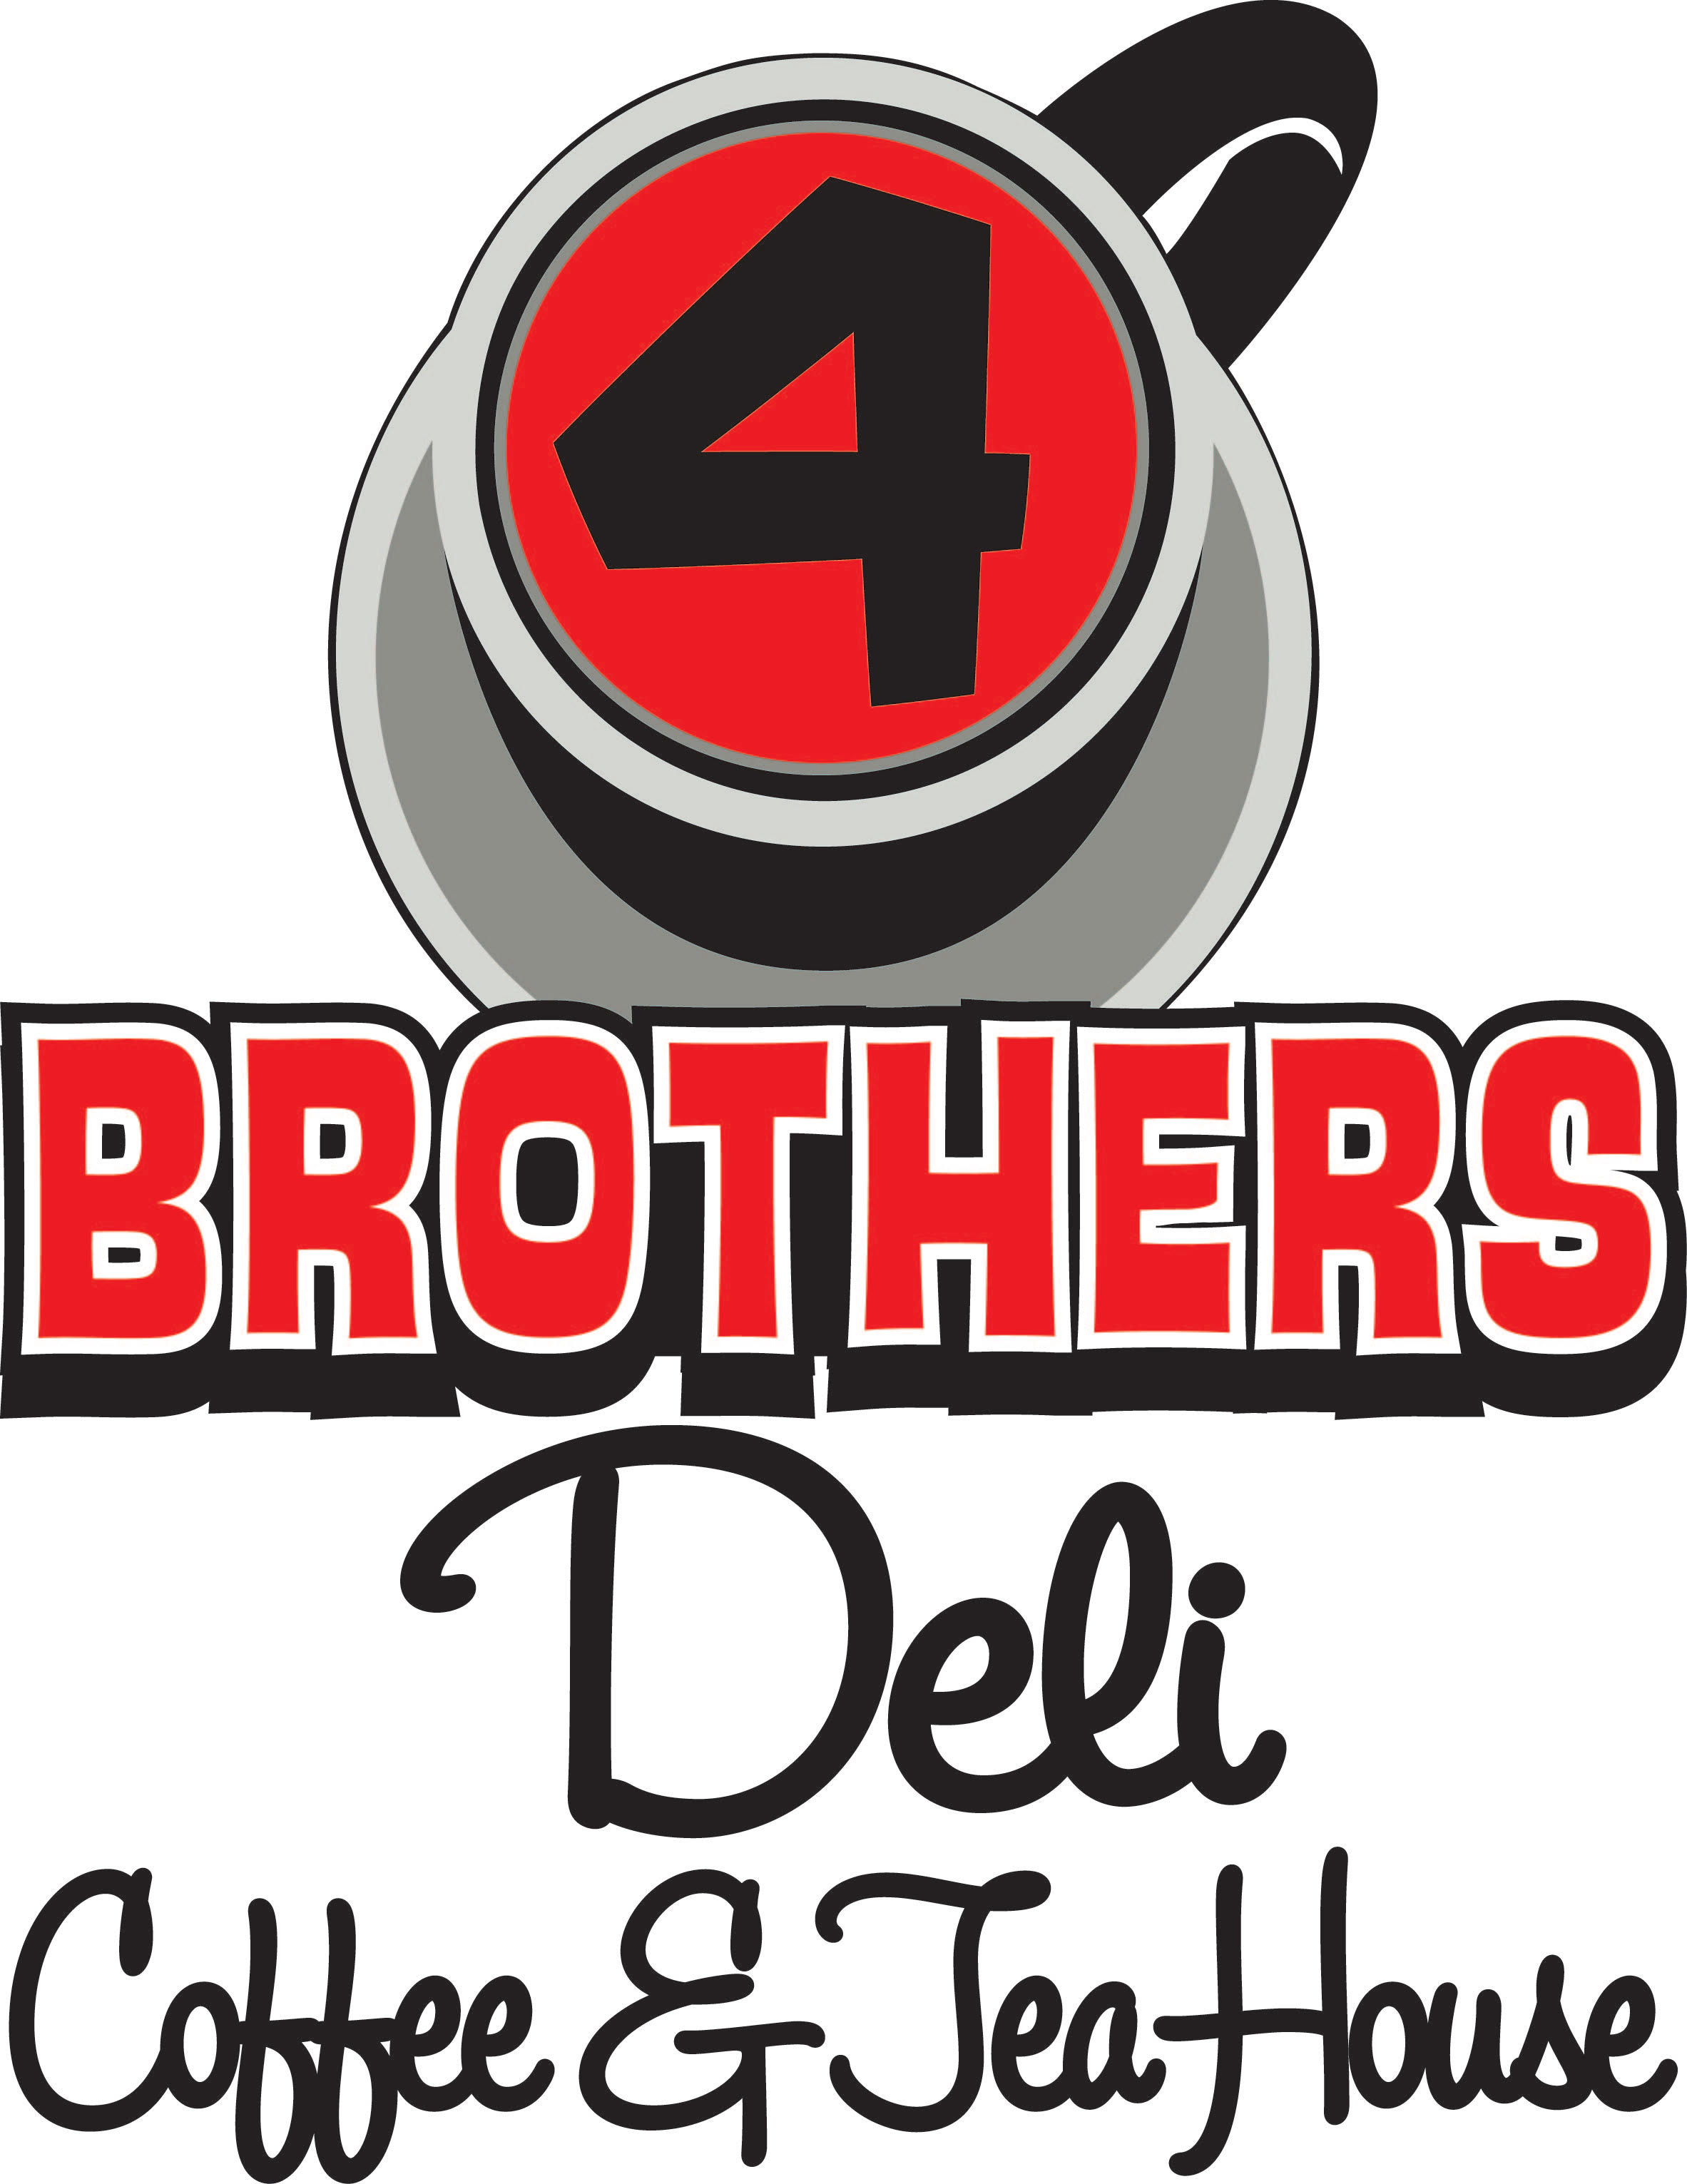 4 Brothers Deli, Coffee & Tea House